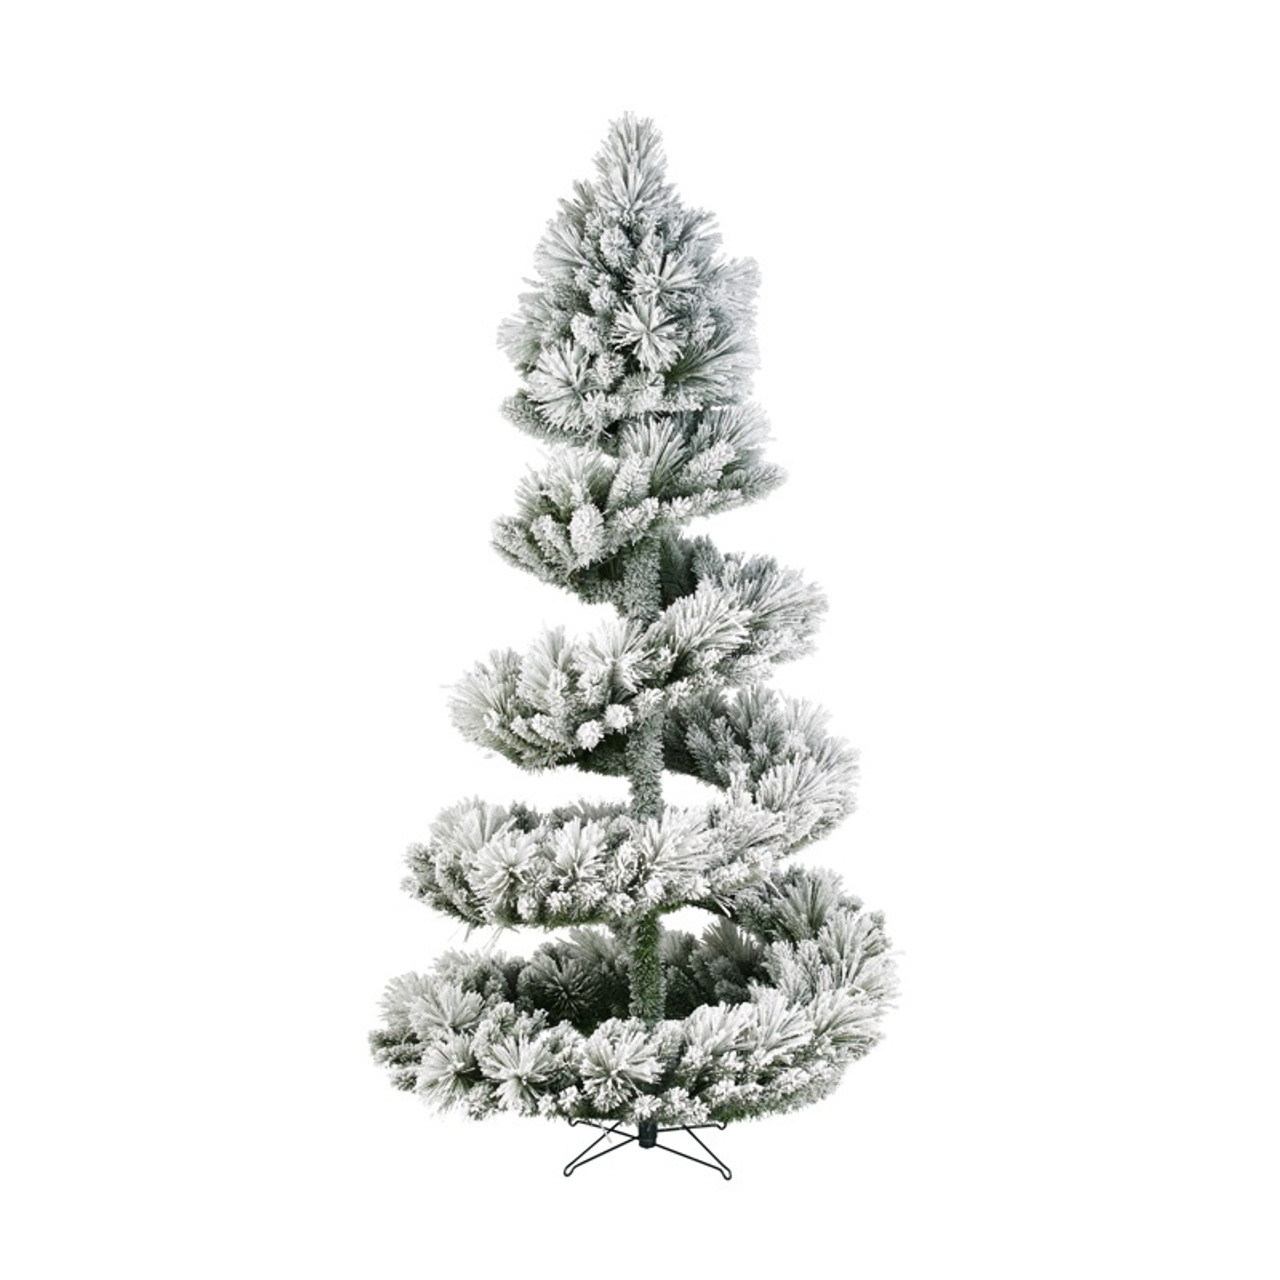 low priced 8ac9e d9b28 7.5FT Spiral Green Frosted Christmas Tree